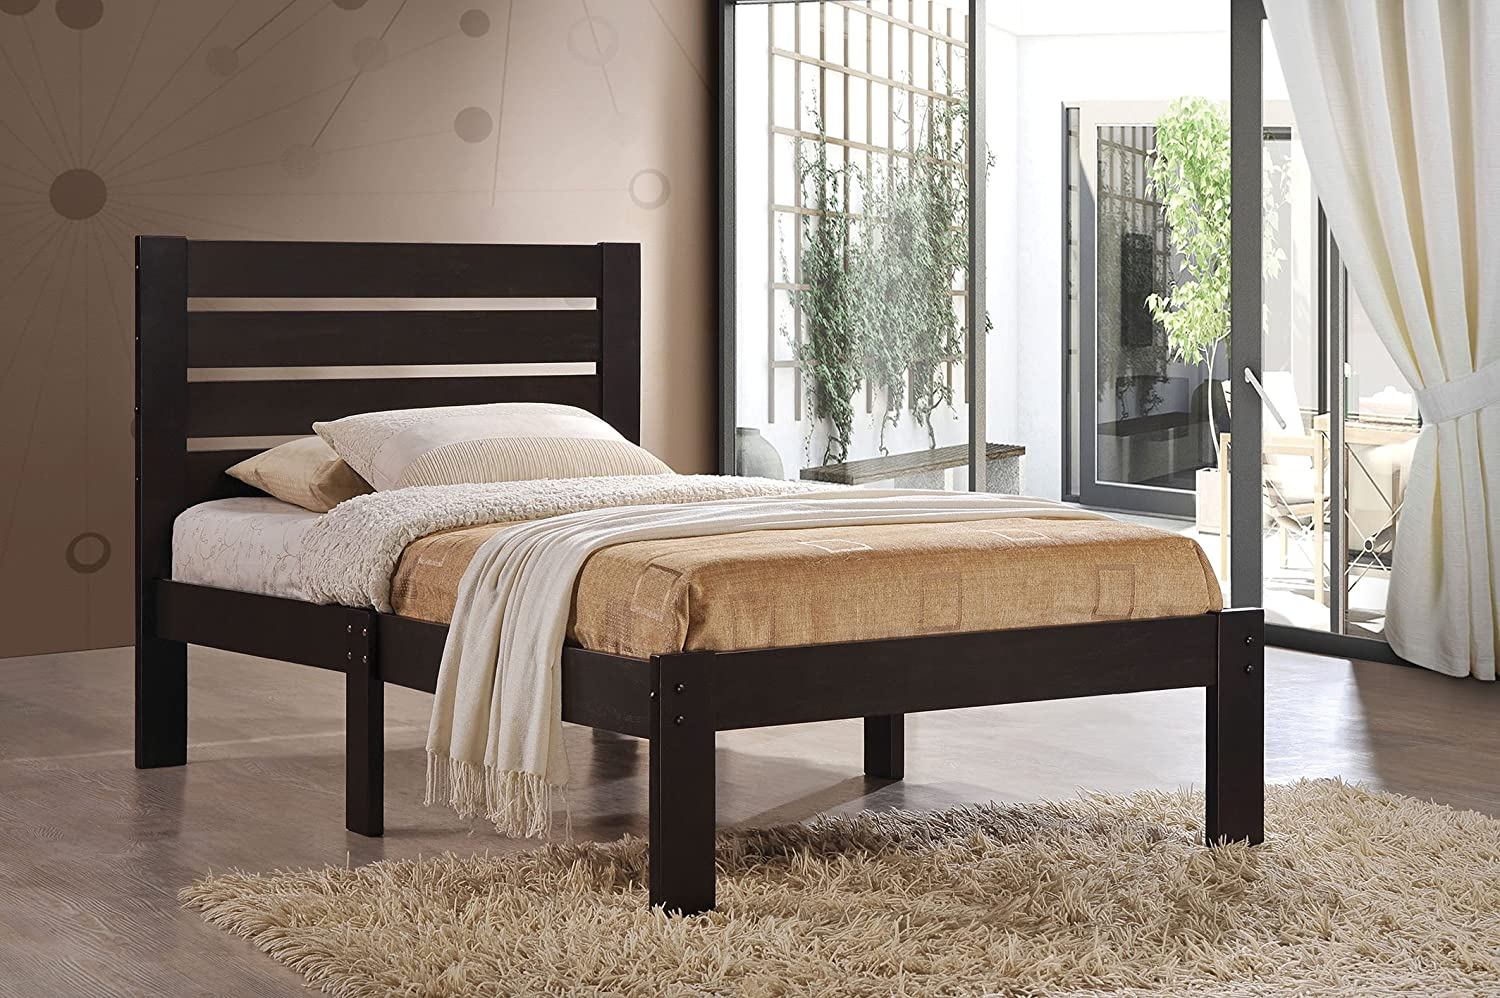 ACME Furniture Kenney Bed, Full, Espresso